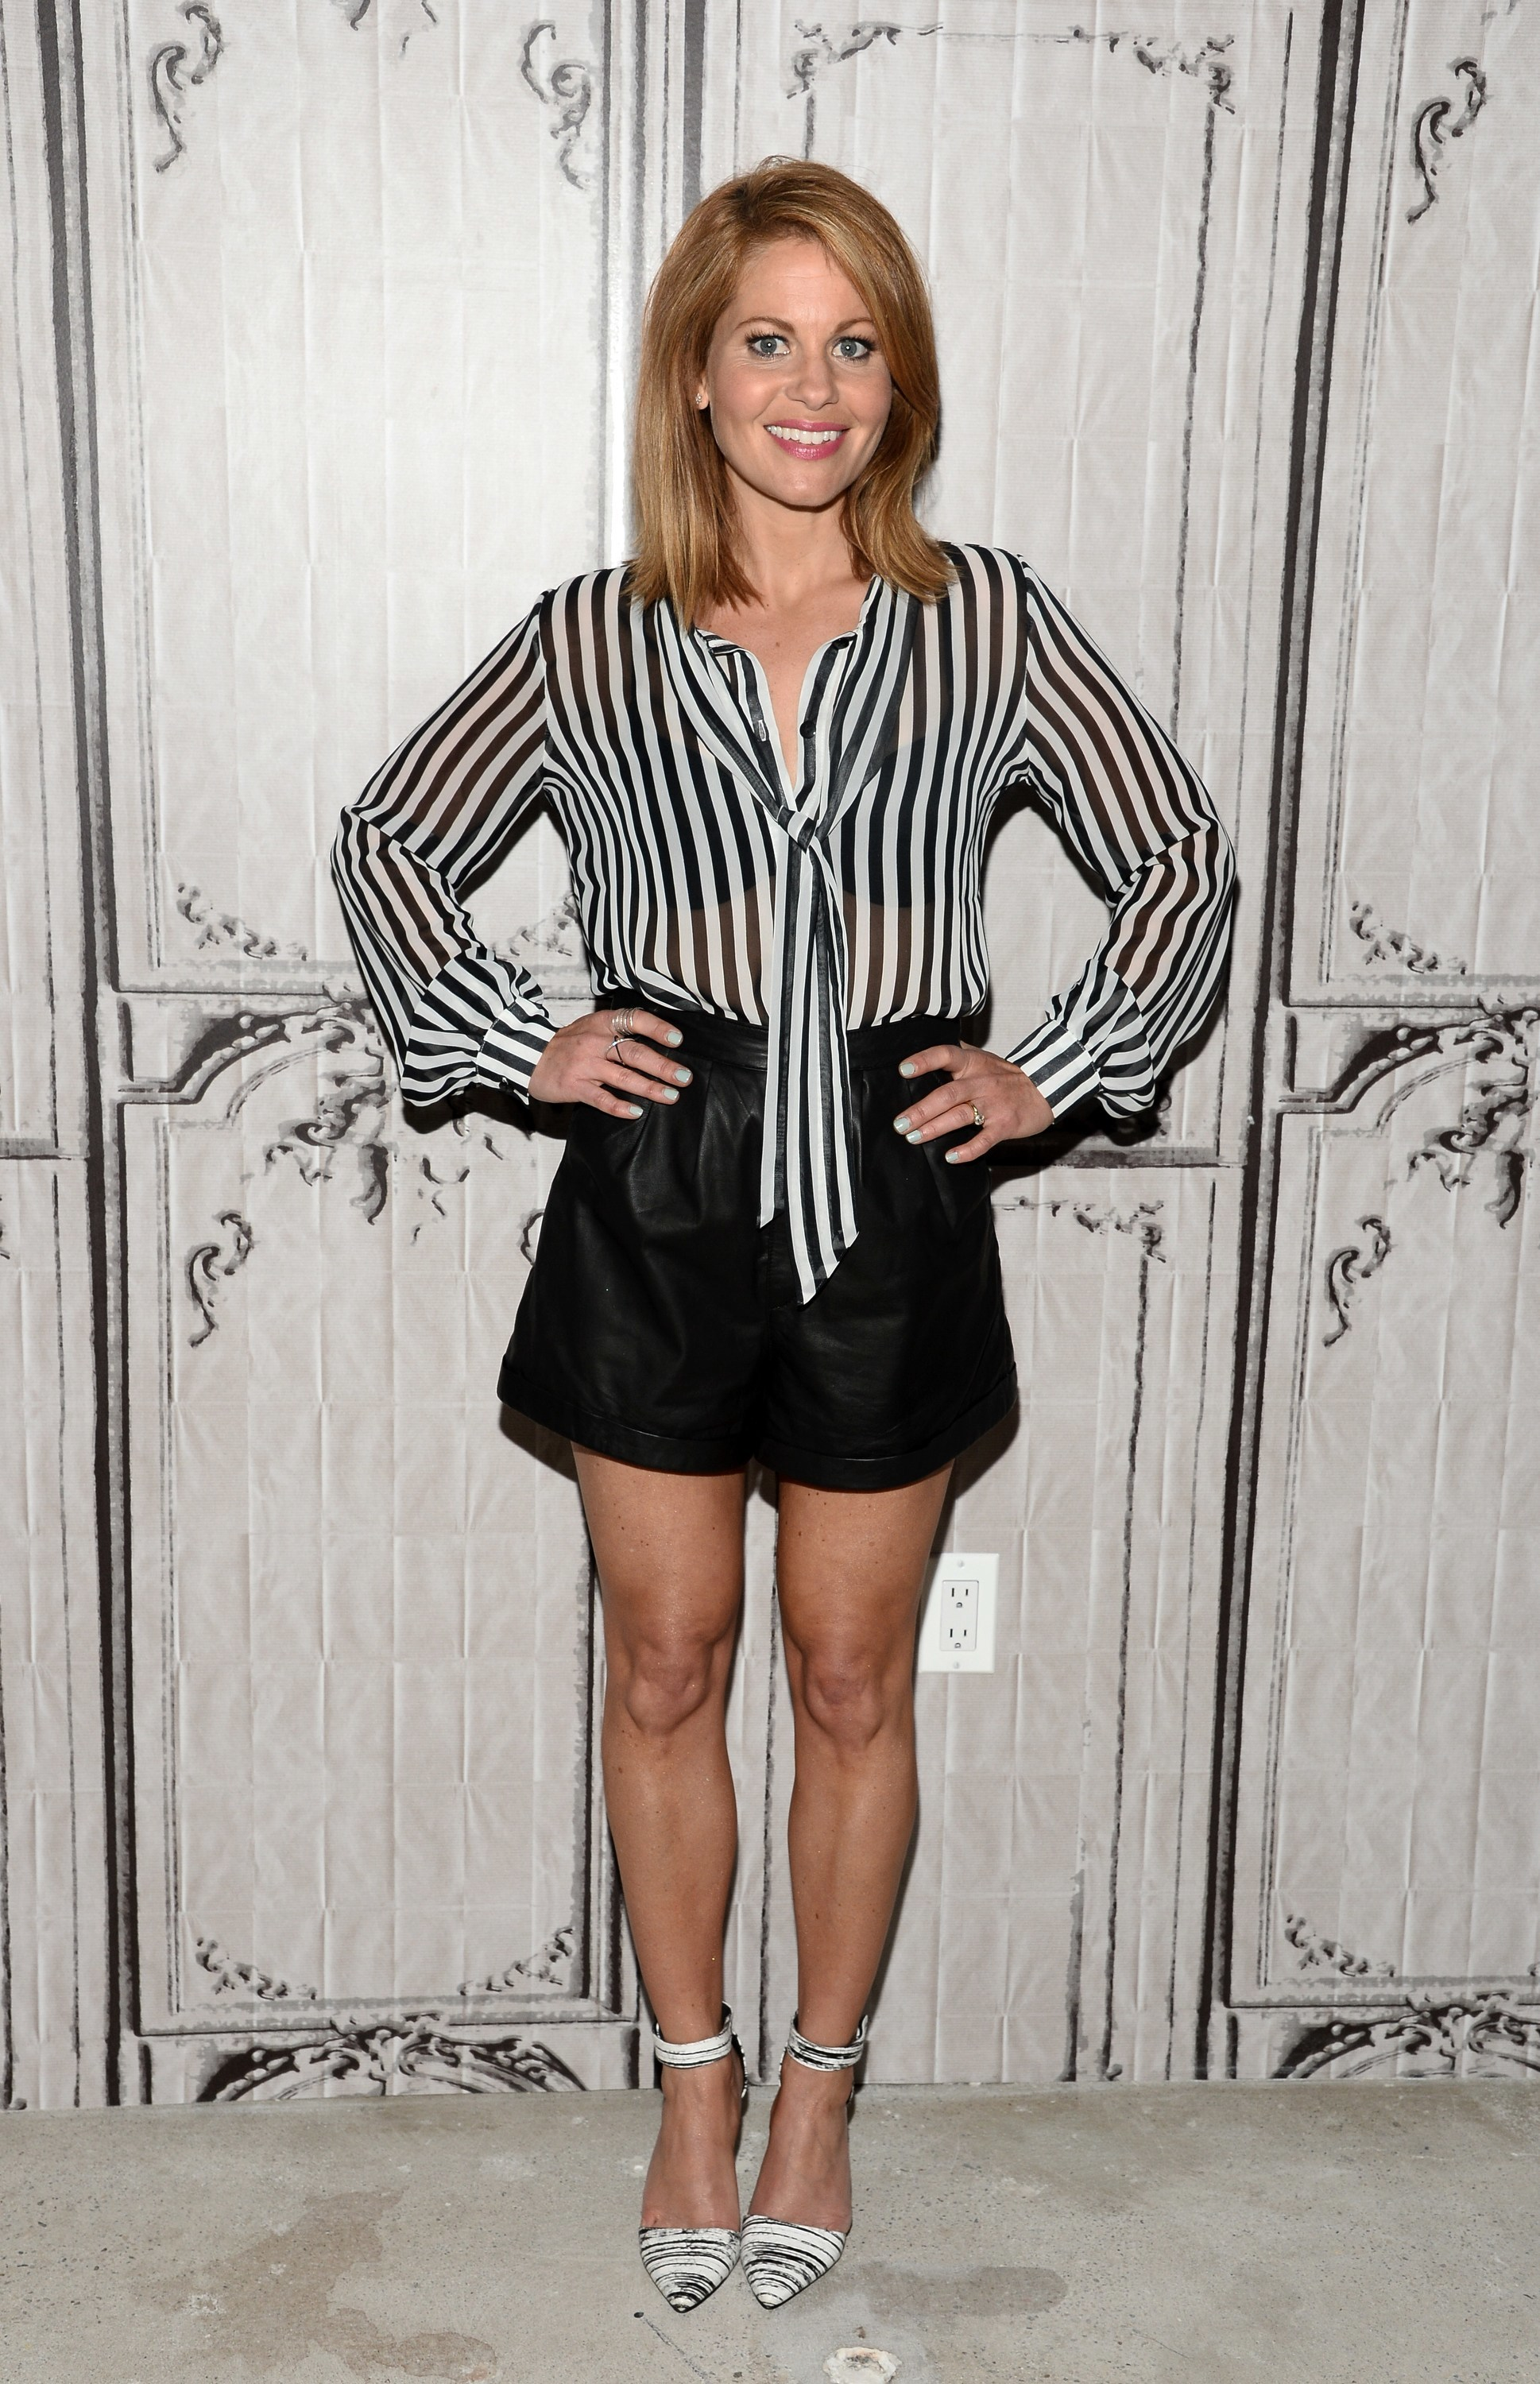 Candace Cameron Bure on the secret to staying fit at 40: